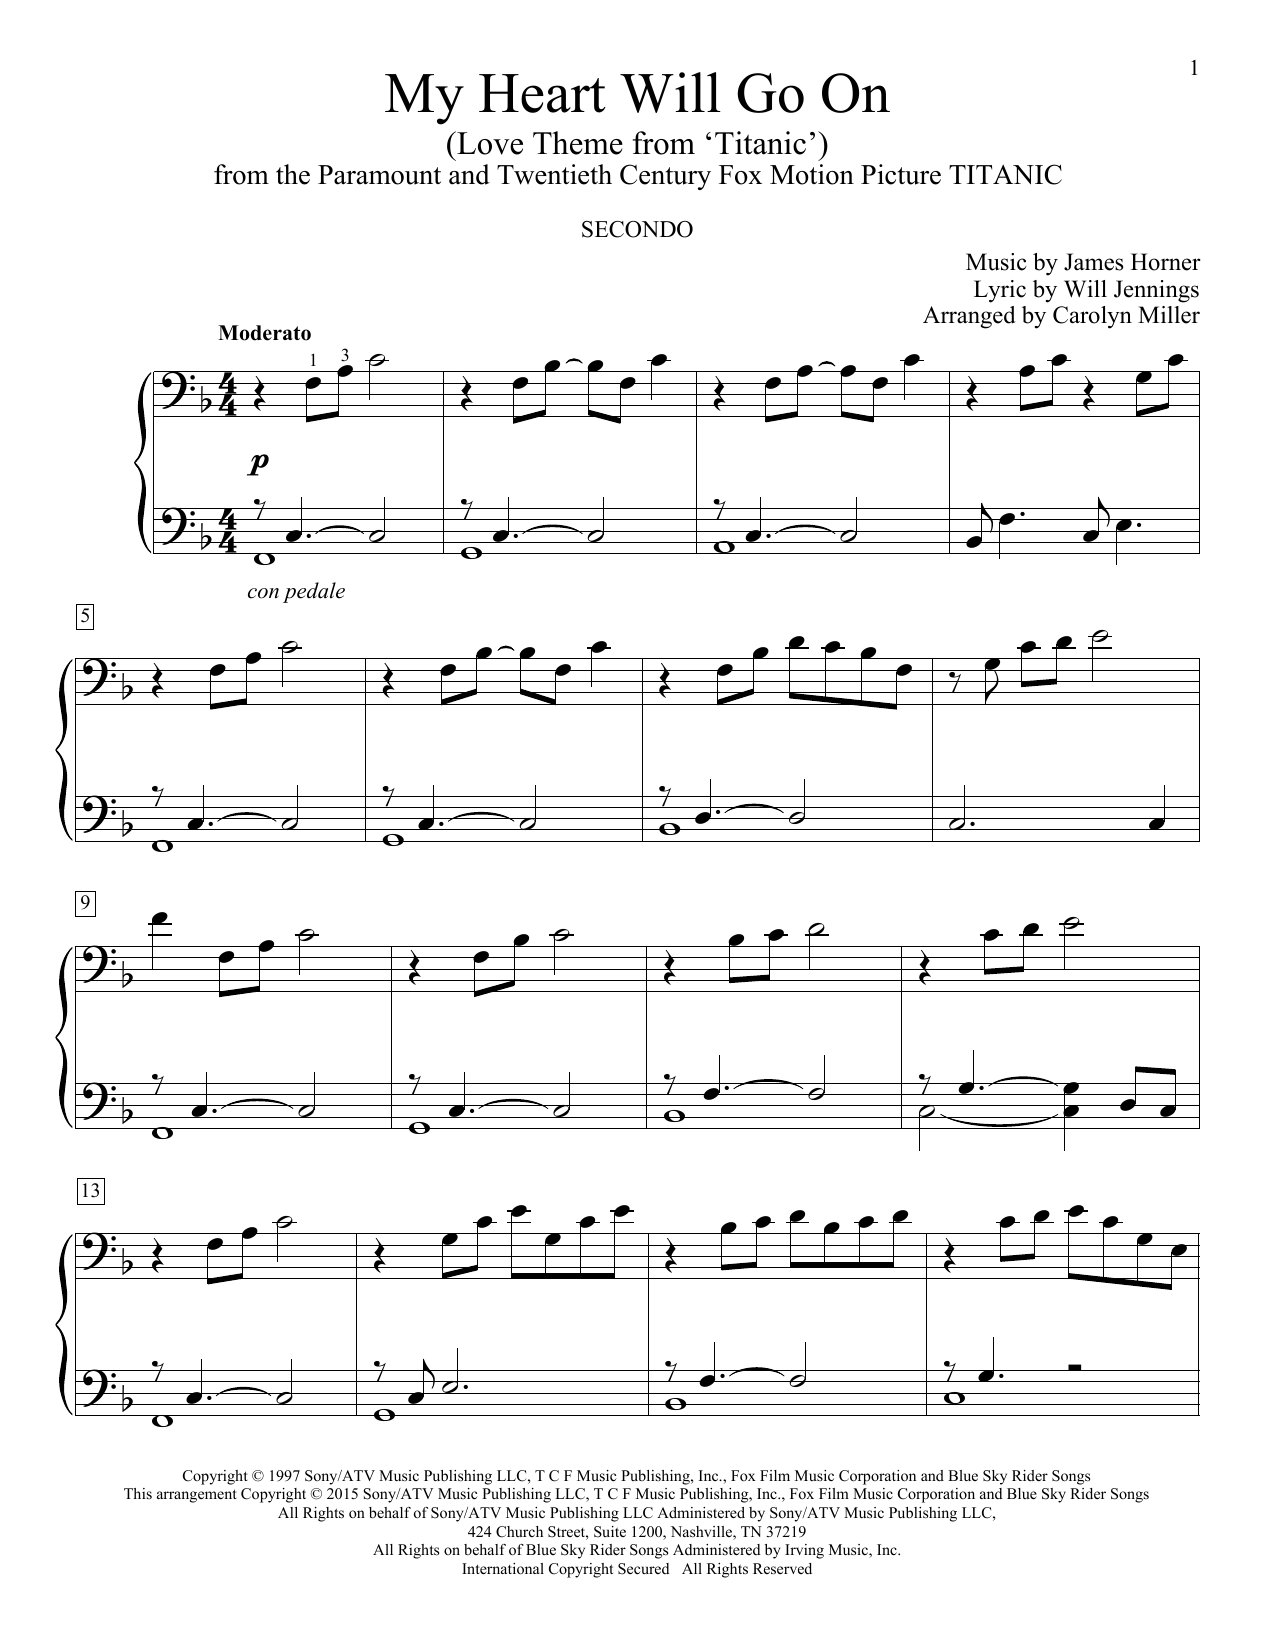 My Heart Will Go On (Love Theme From Titanic) sheet music by Celine Dion (Piano Duet u2013 162211)